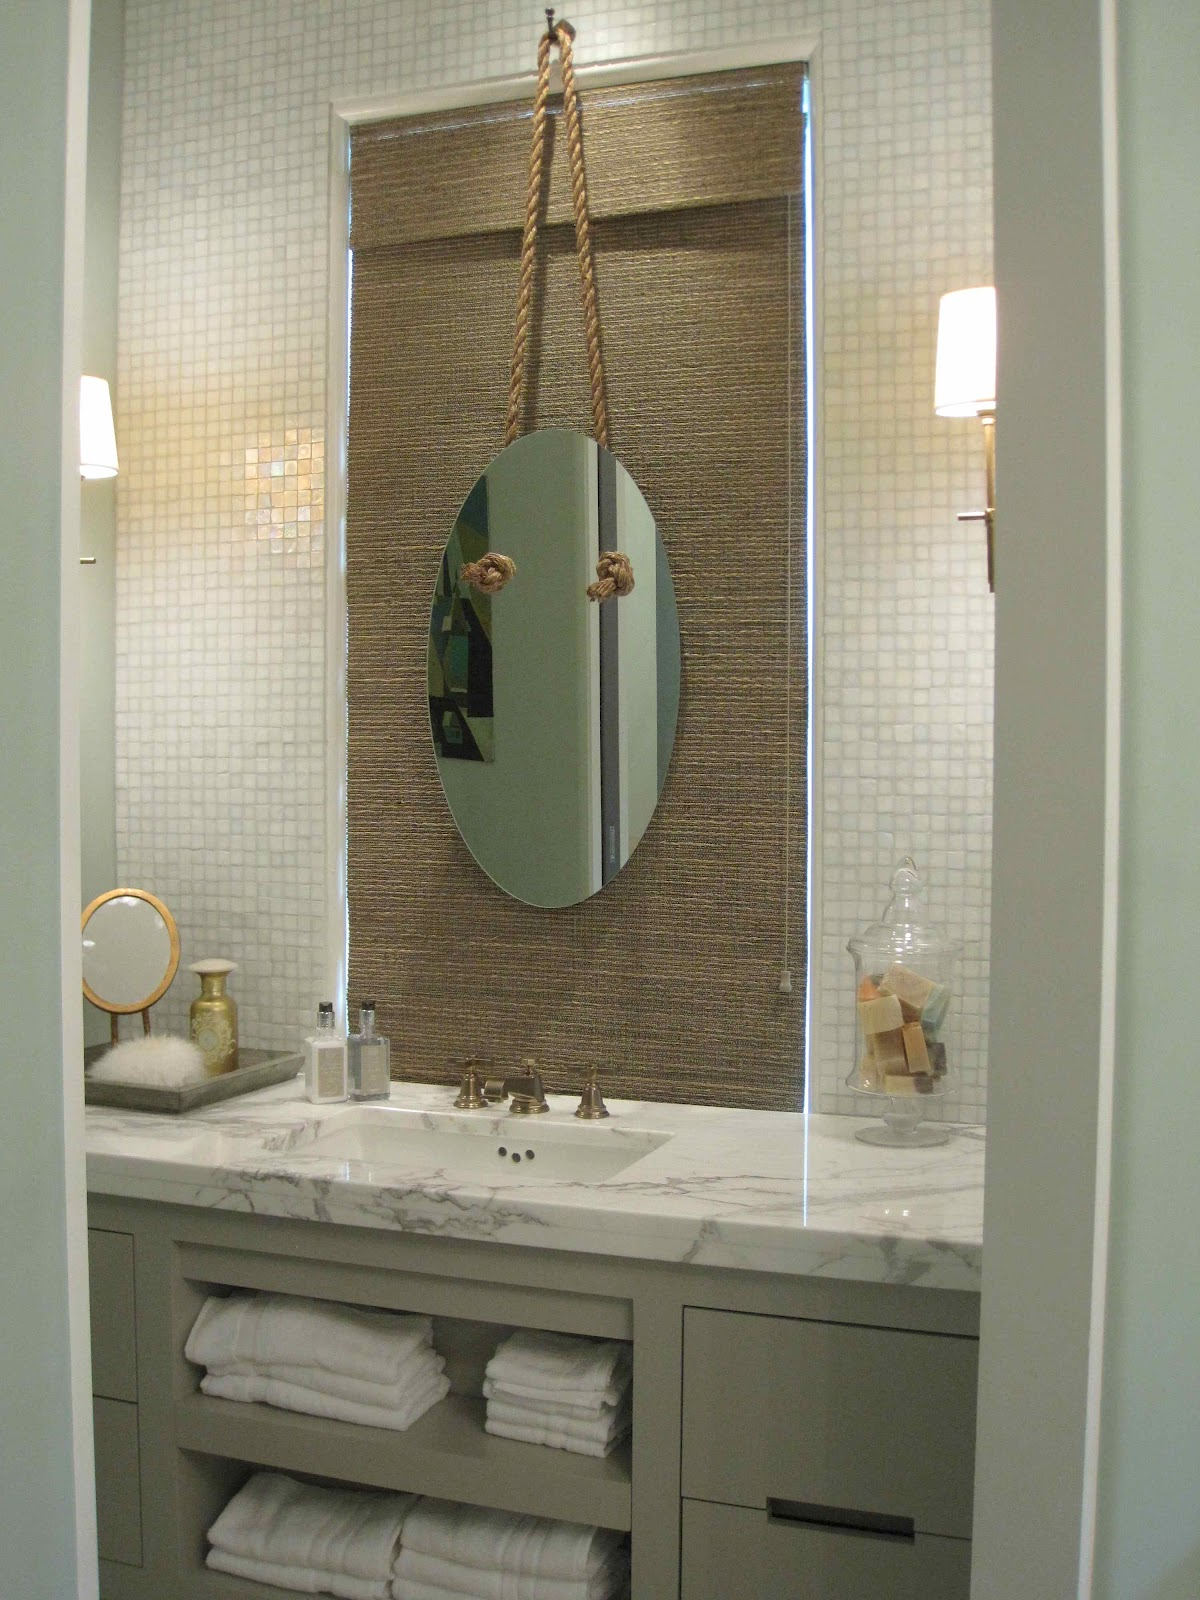 Tour of coastal living 39 s 2012 ultimate beach house driven by decor - Nautical decor bathroom ...